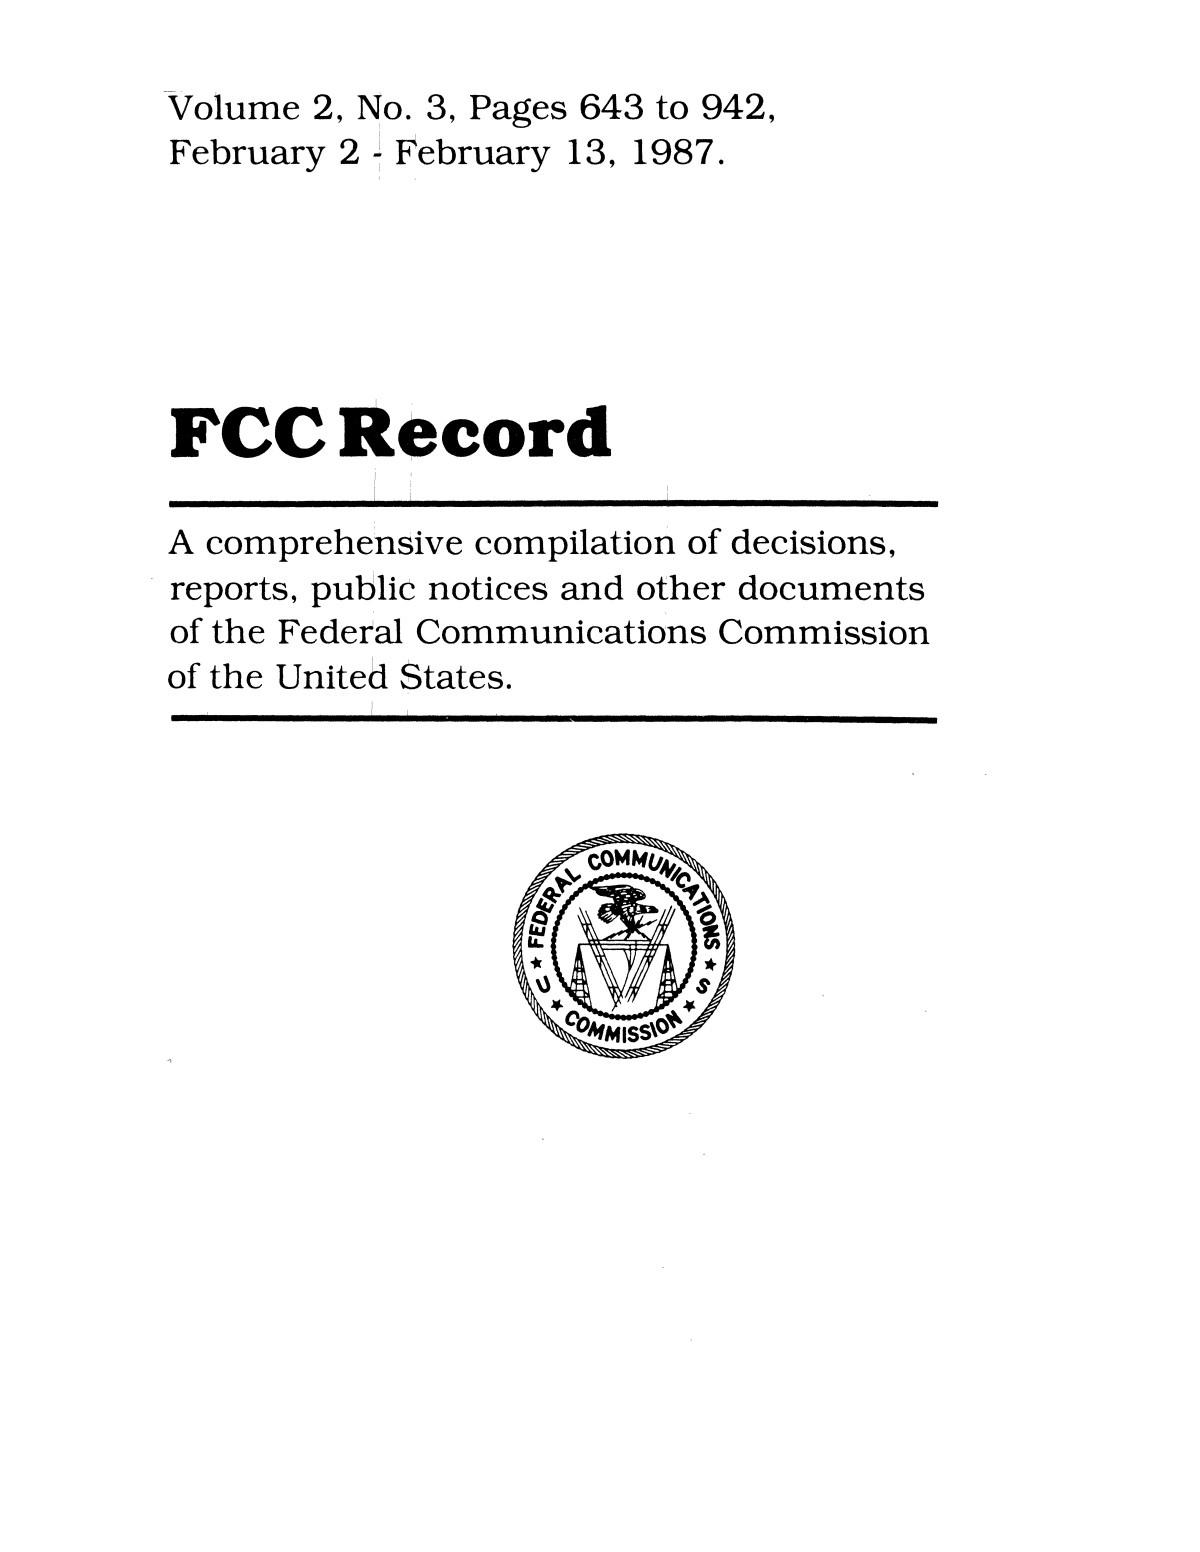 FCC Record, Volume 2, No. 3, Pages 643 to 942, February 2 - February 13, 1987                                                                                                      Front Cover